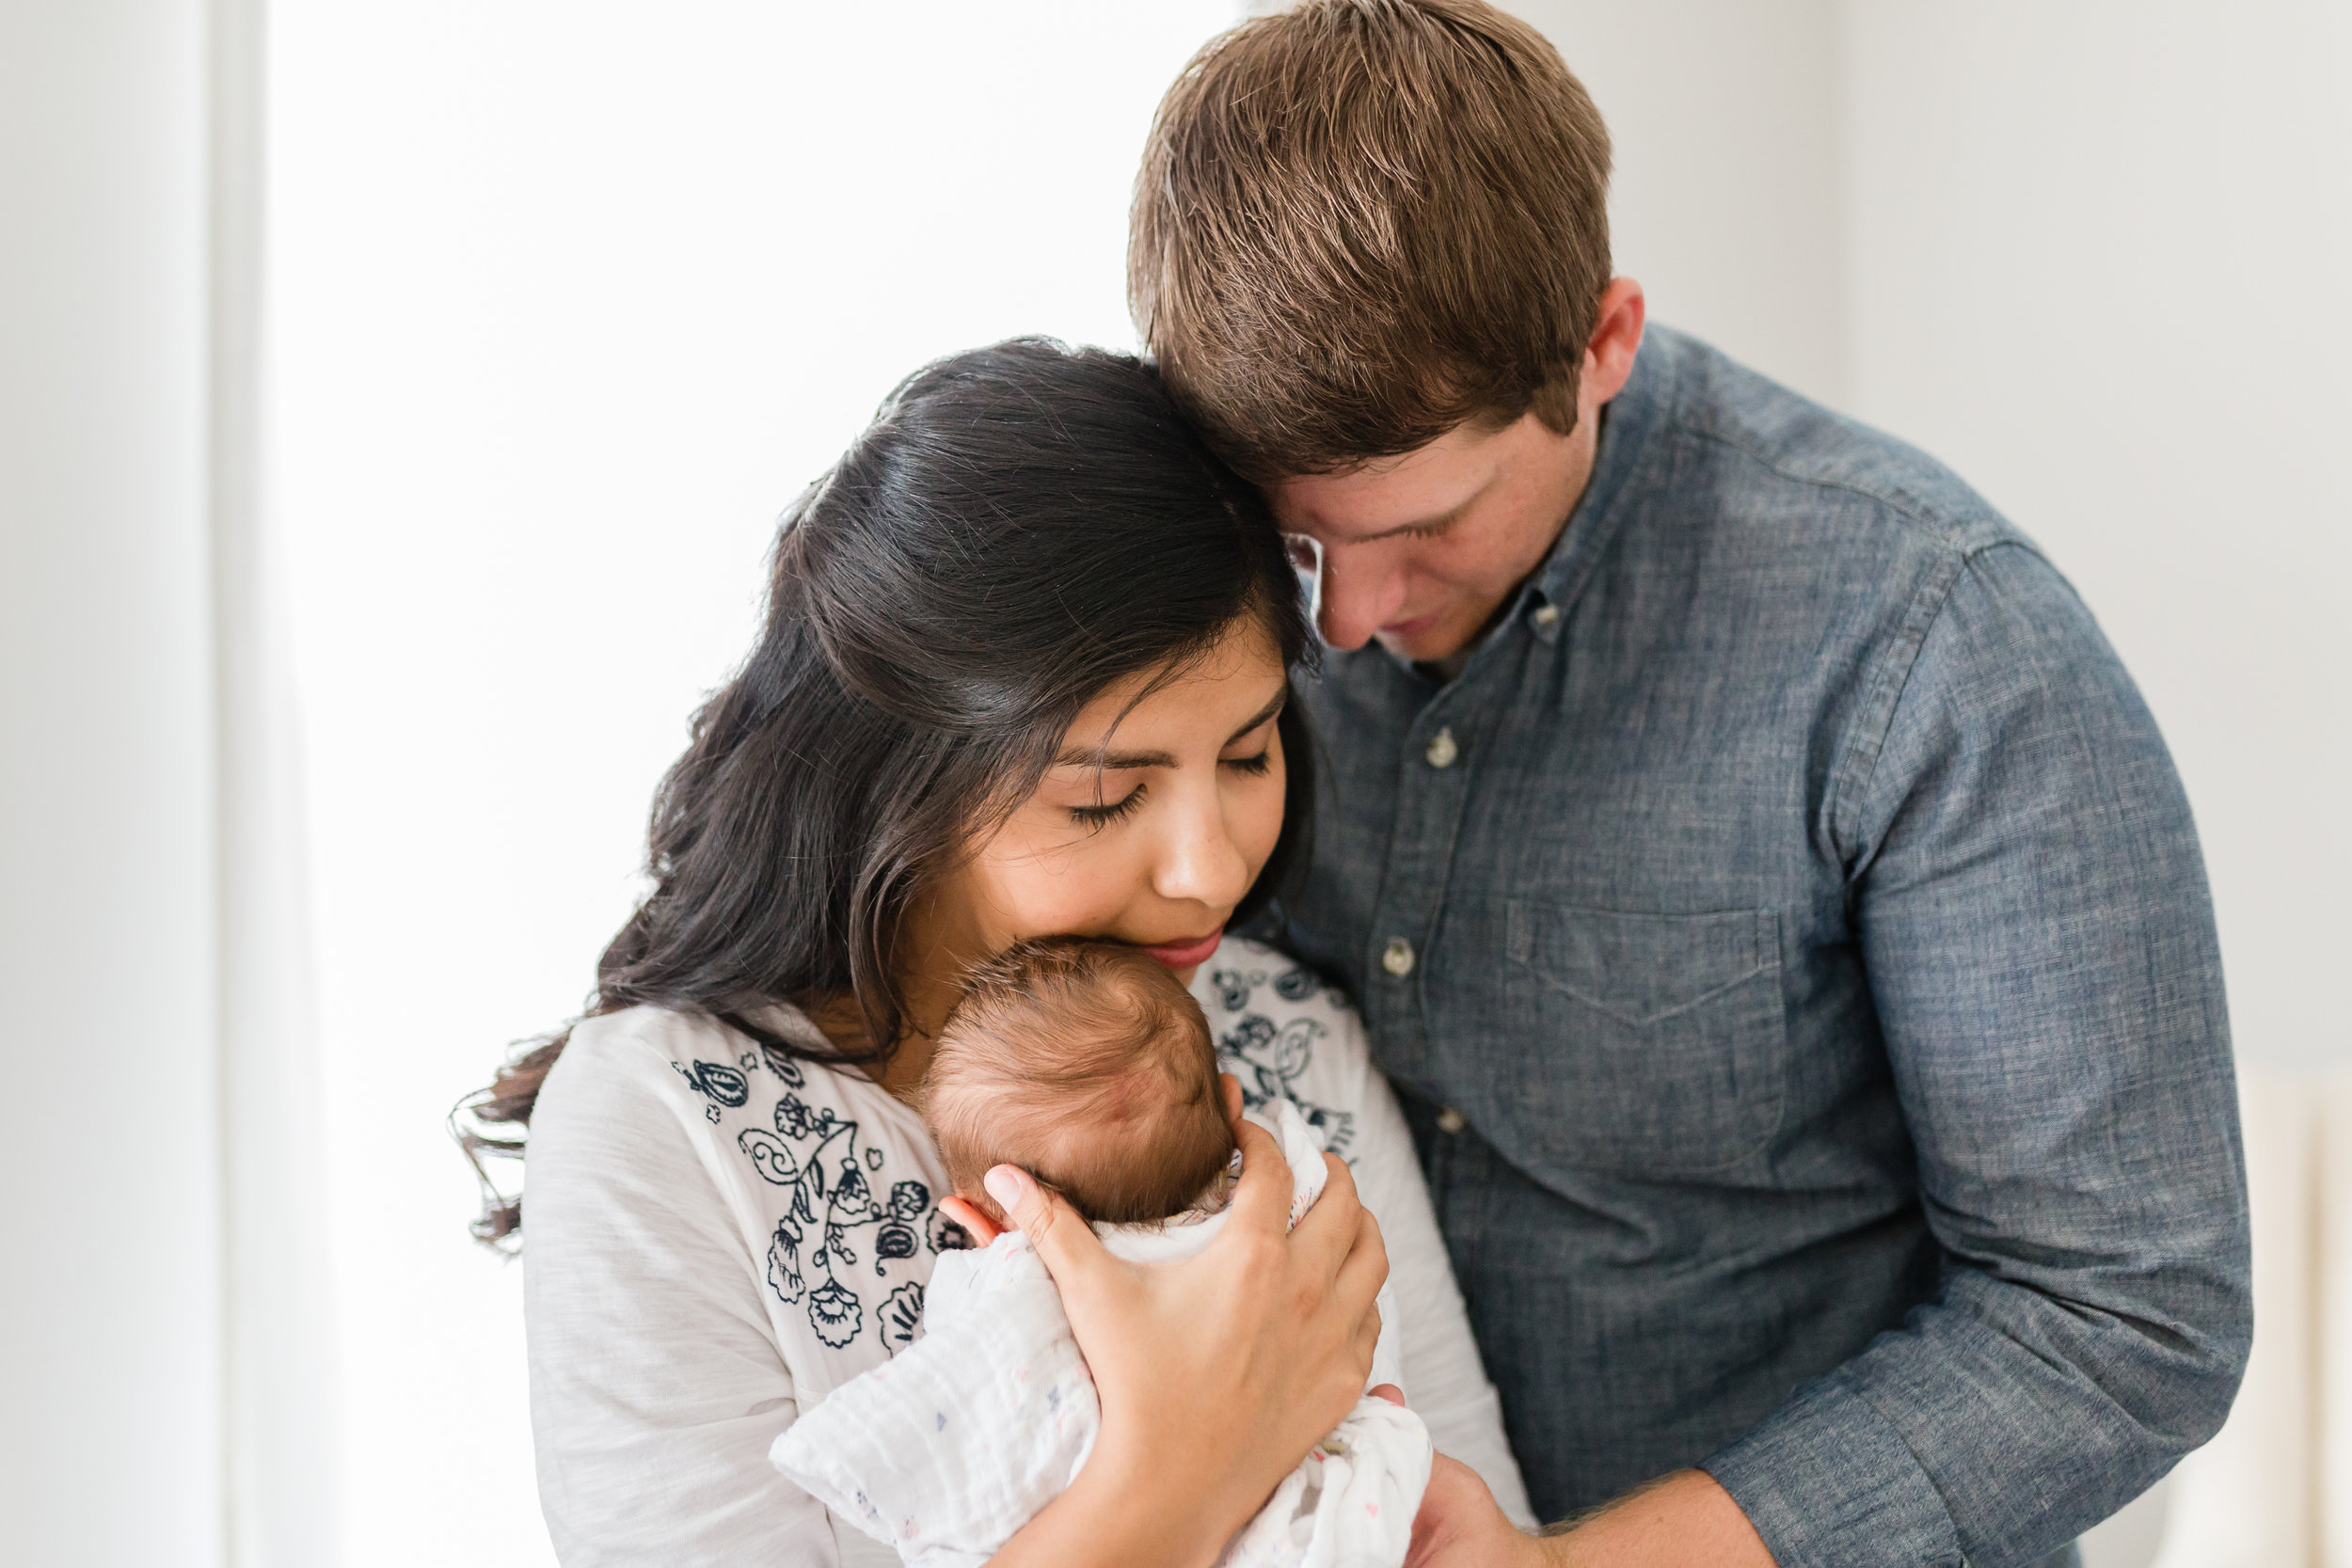 hollins-newborn-session-7027_40217477010_o.jpg